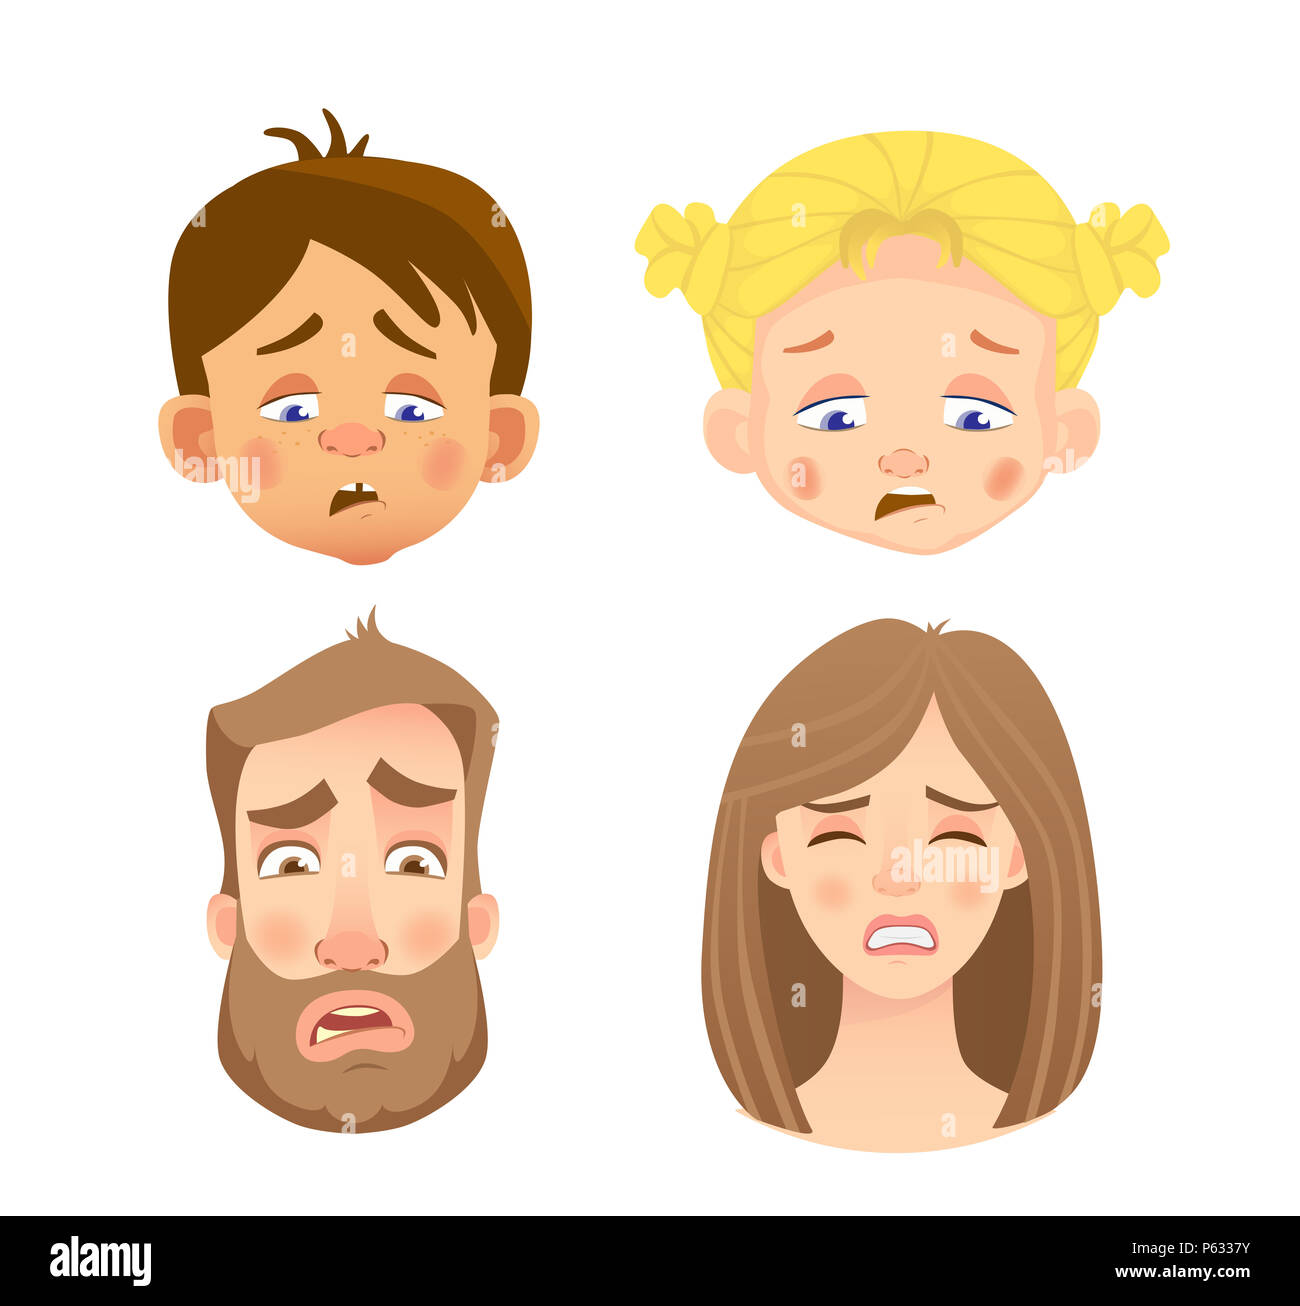 Emotions of human face. Set of human faces expressing emotions. Illustration - Stock Image